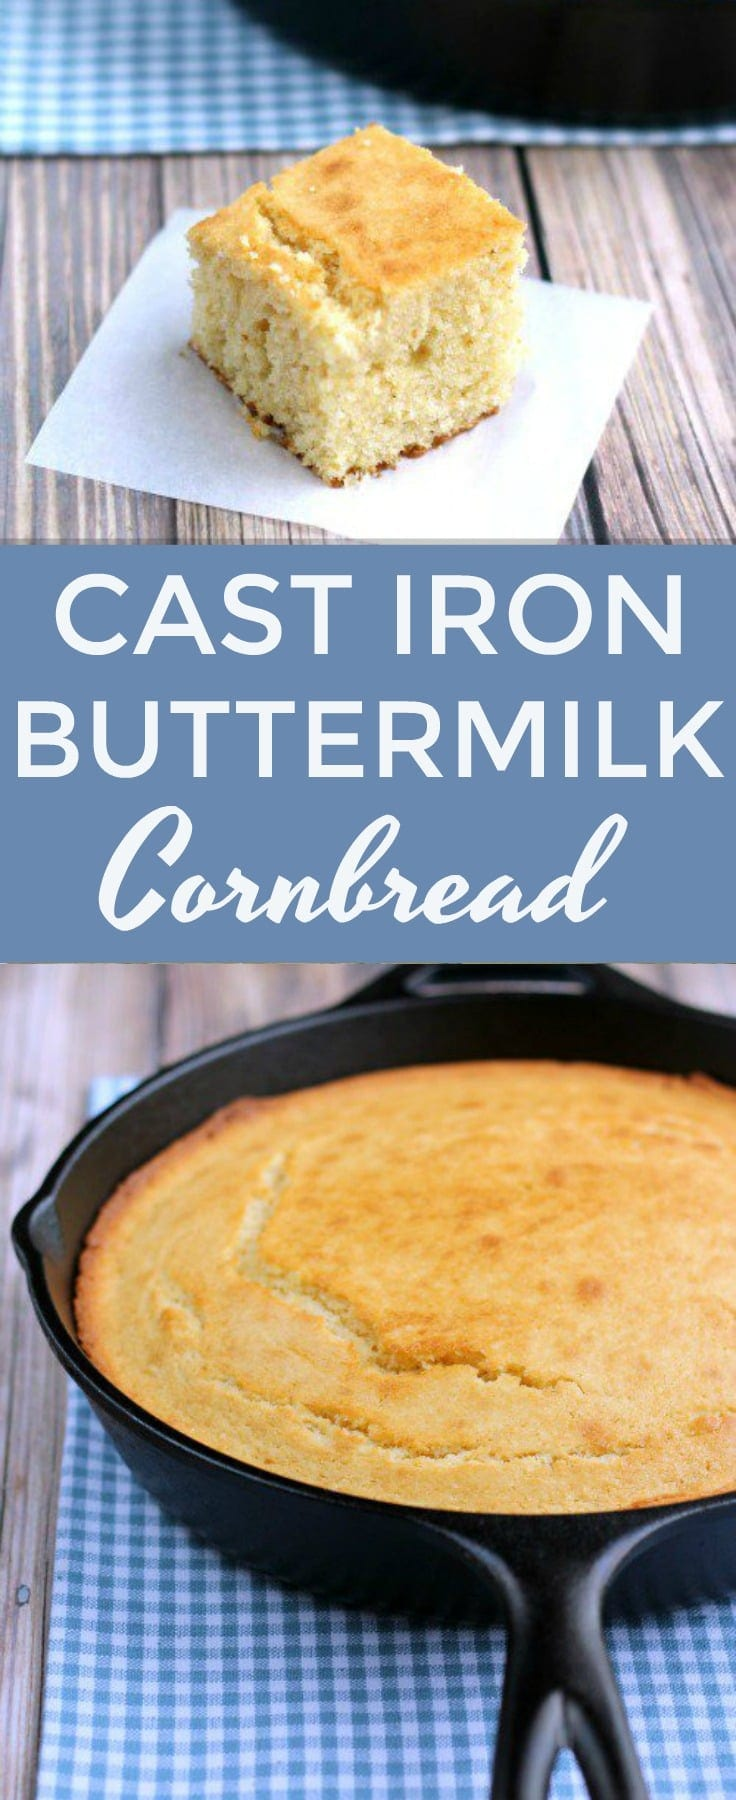 You won't find a dry crumb in this delicious Cast Iron Buttermilk Cornbread. The perfect side to any southern meal! #cornbread #castiron #southernfood #southerncooking #buttermilkcornbread